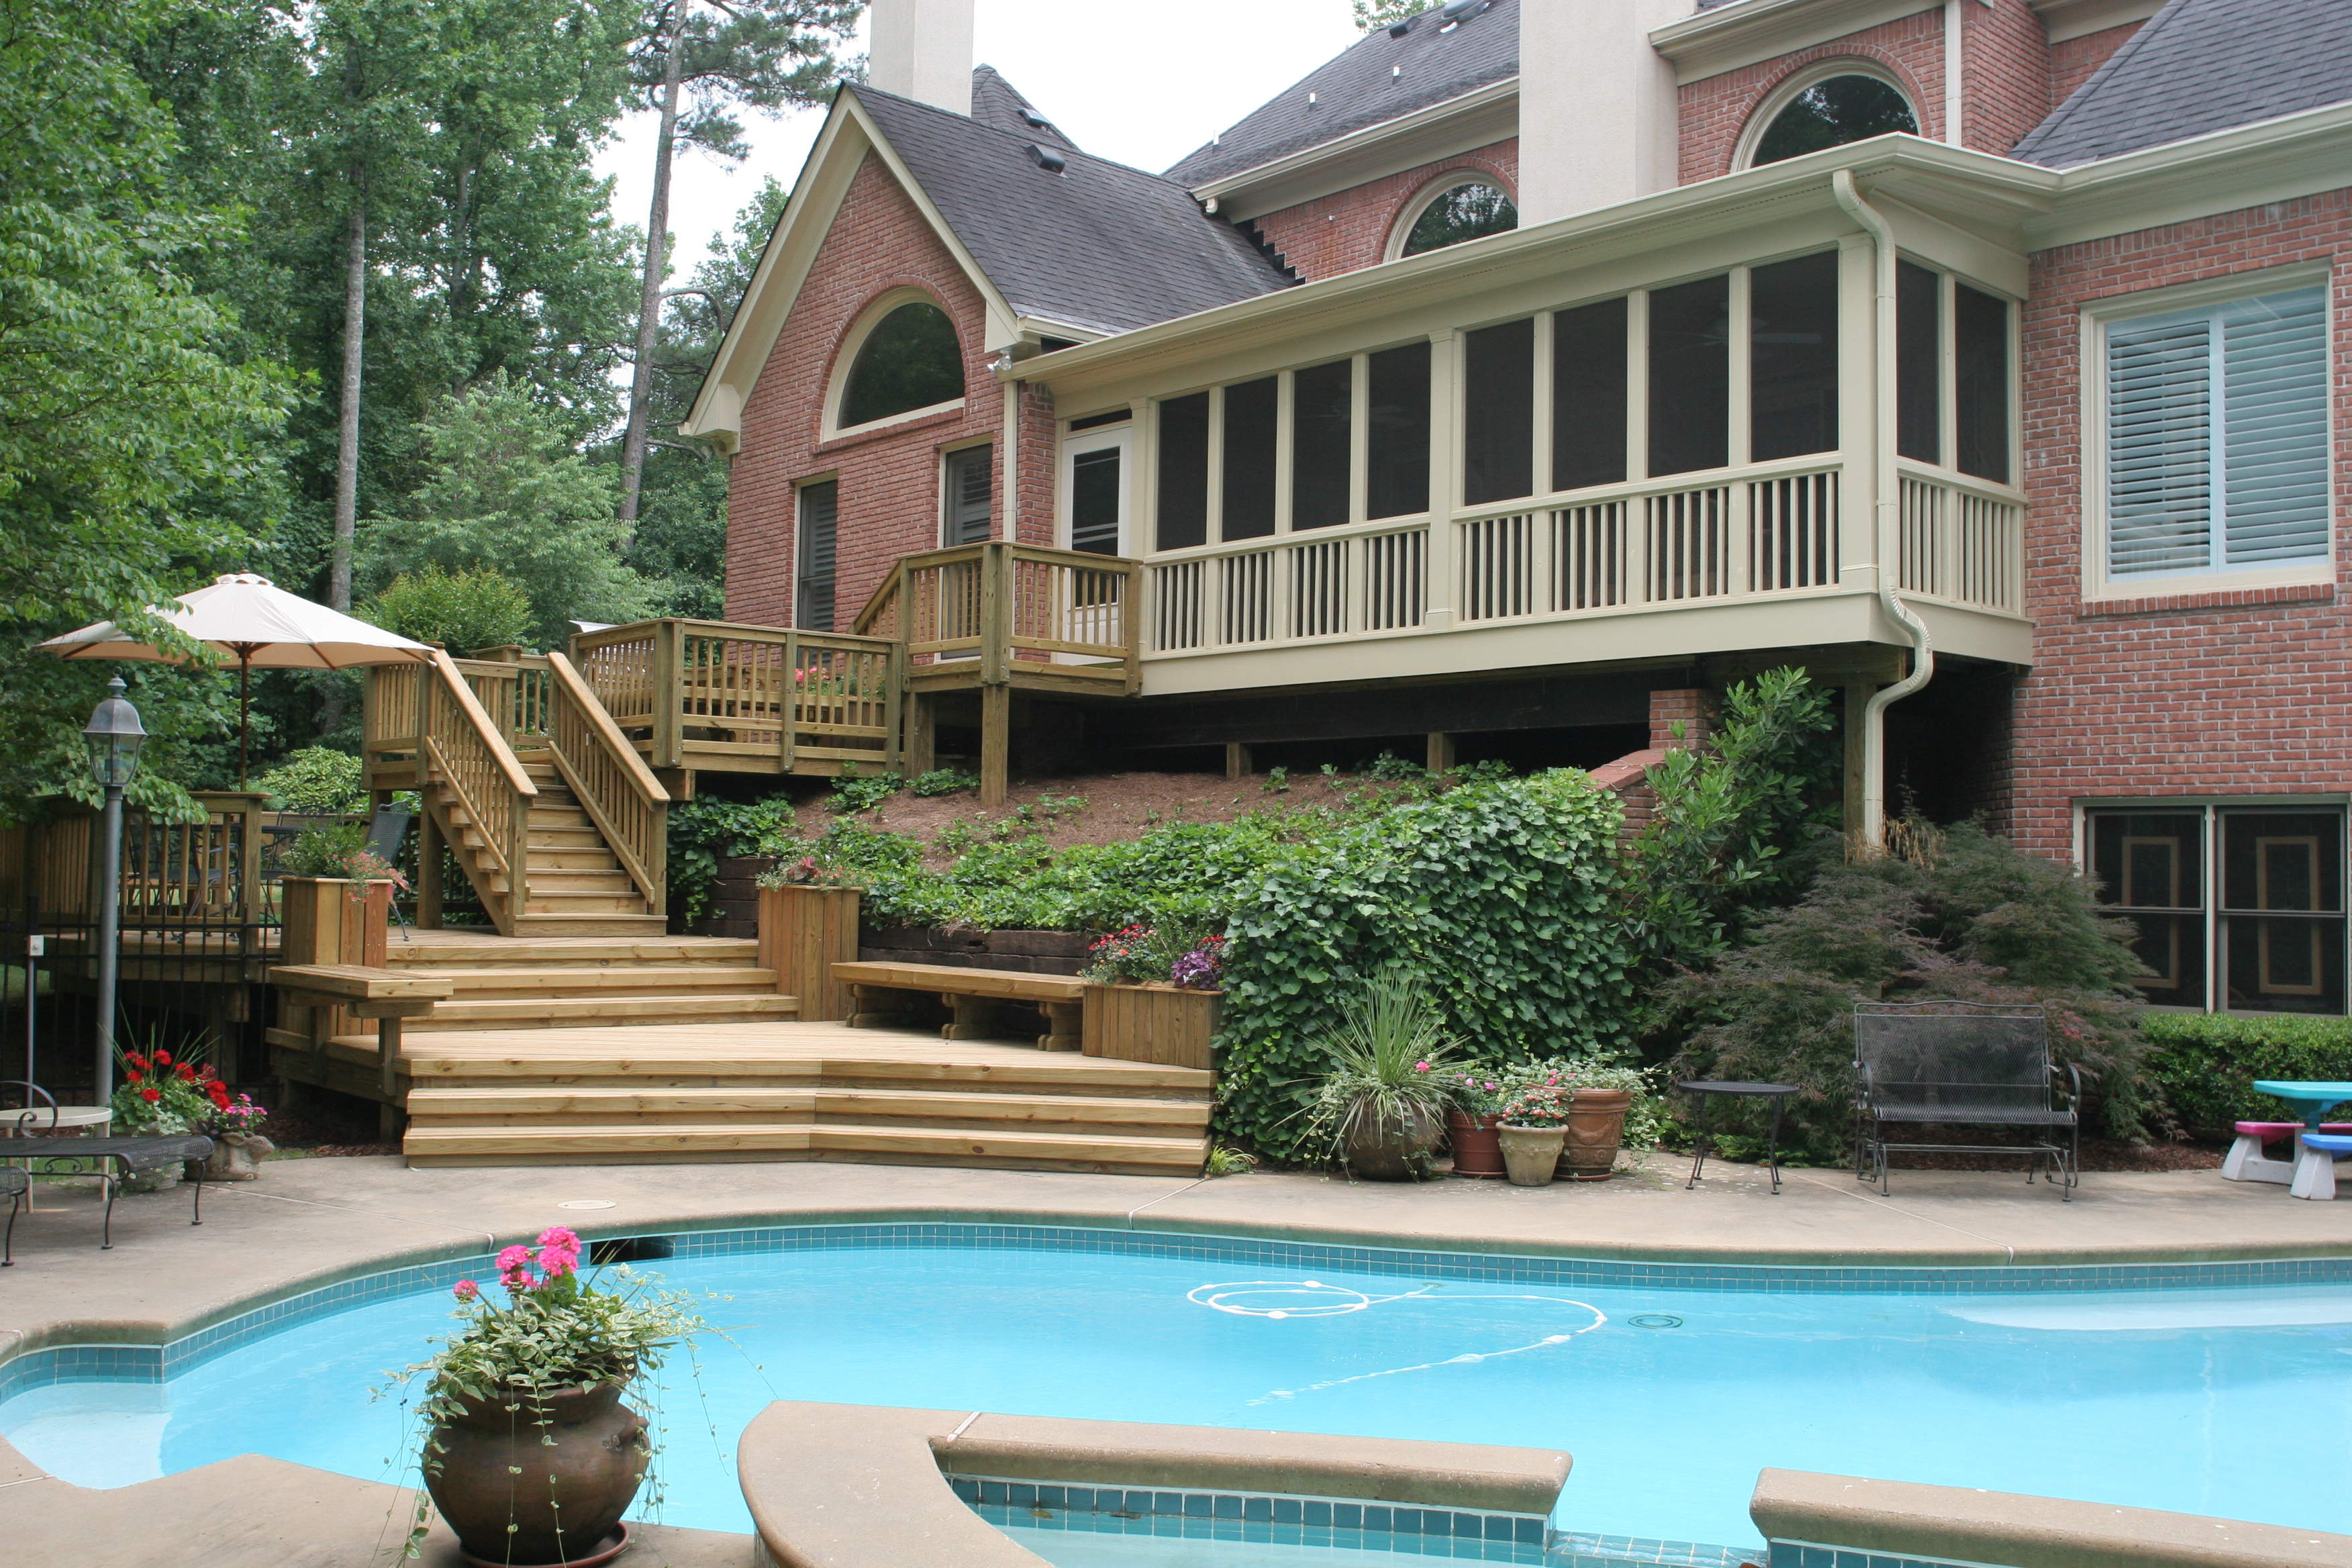 Multilevel Deck Design Ideas by Archadeck | St. Louis ... on Patio With Deck Ideas id=77546